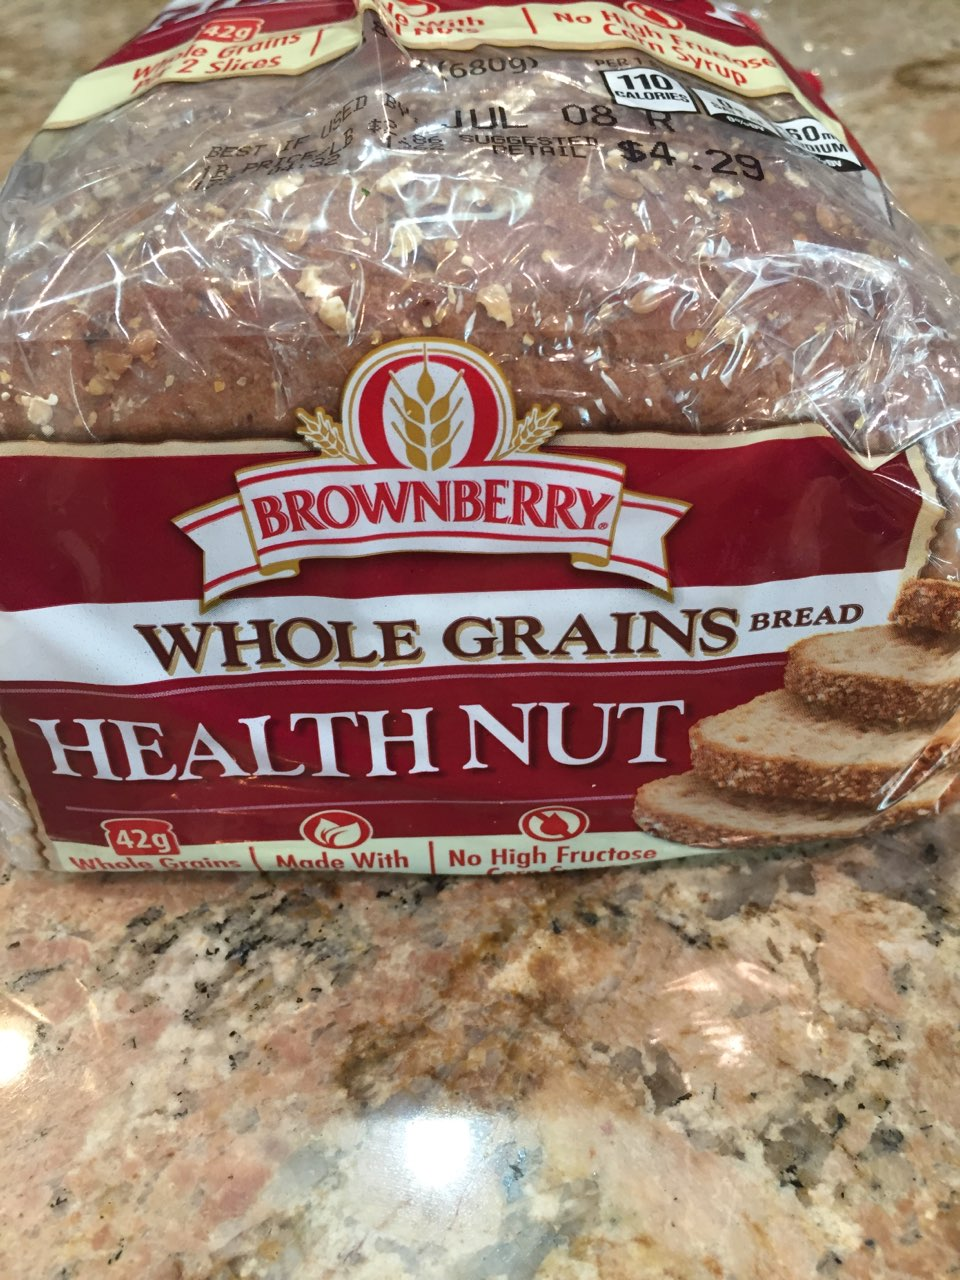 Brownberry Natural Health Nut Bread